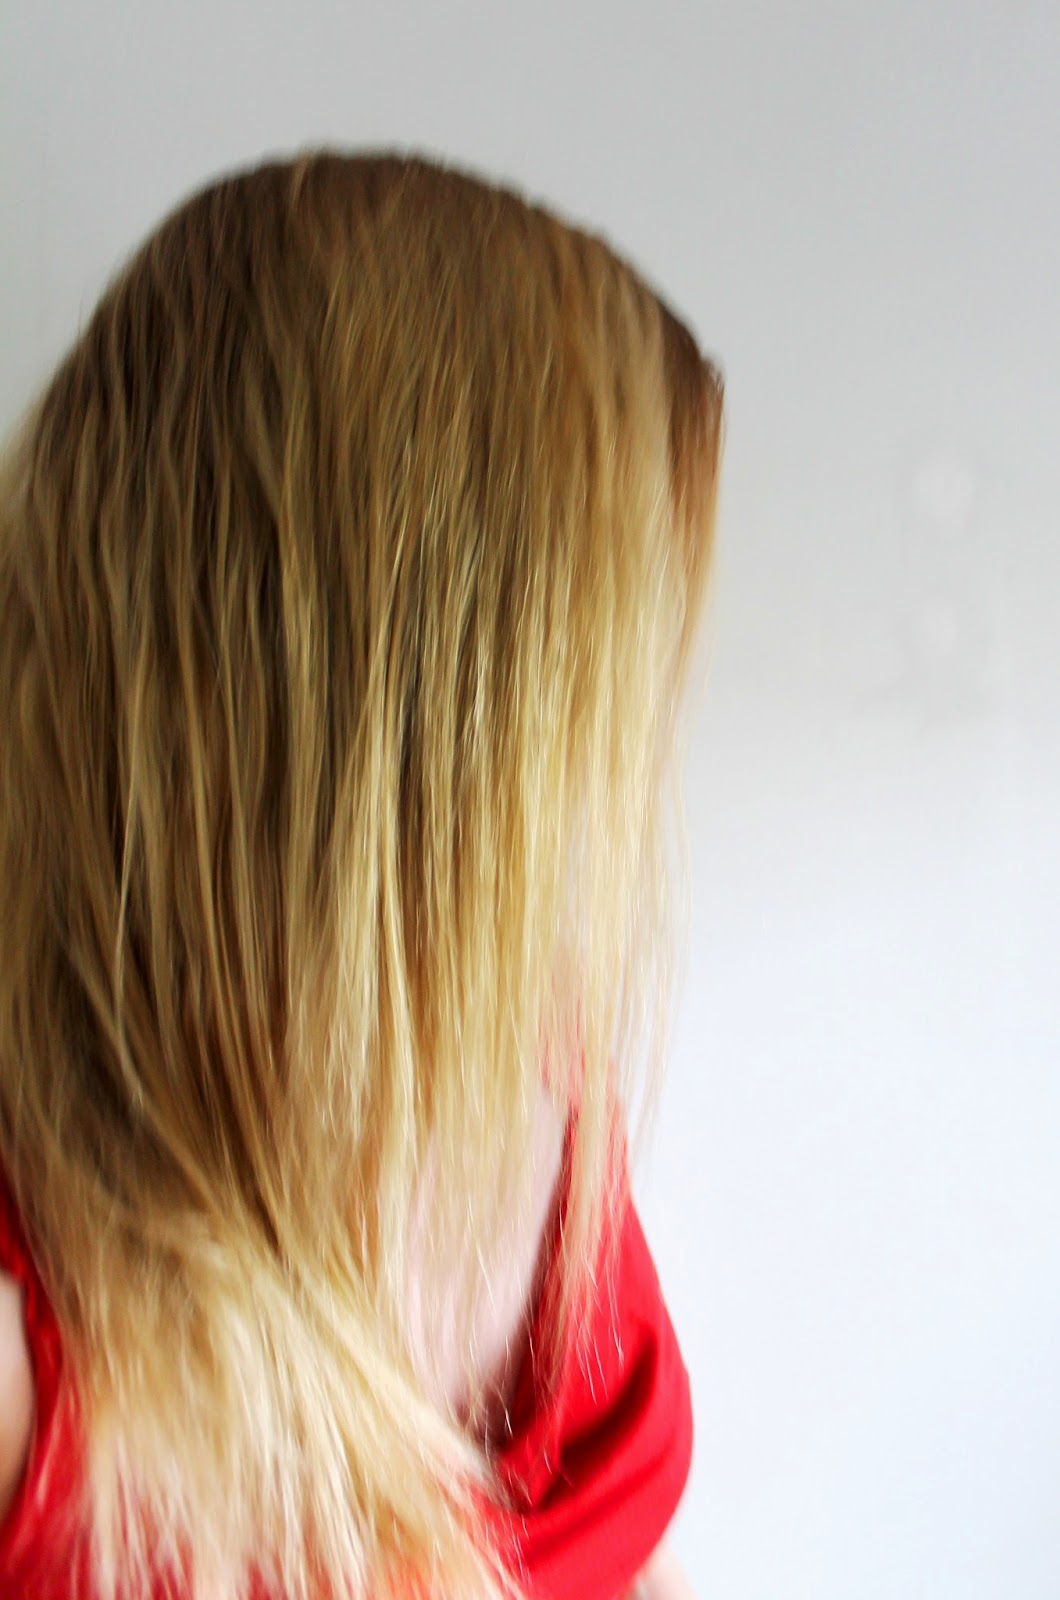 After, ombre that I created | Alinan kotona blog